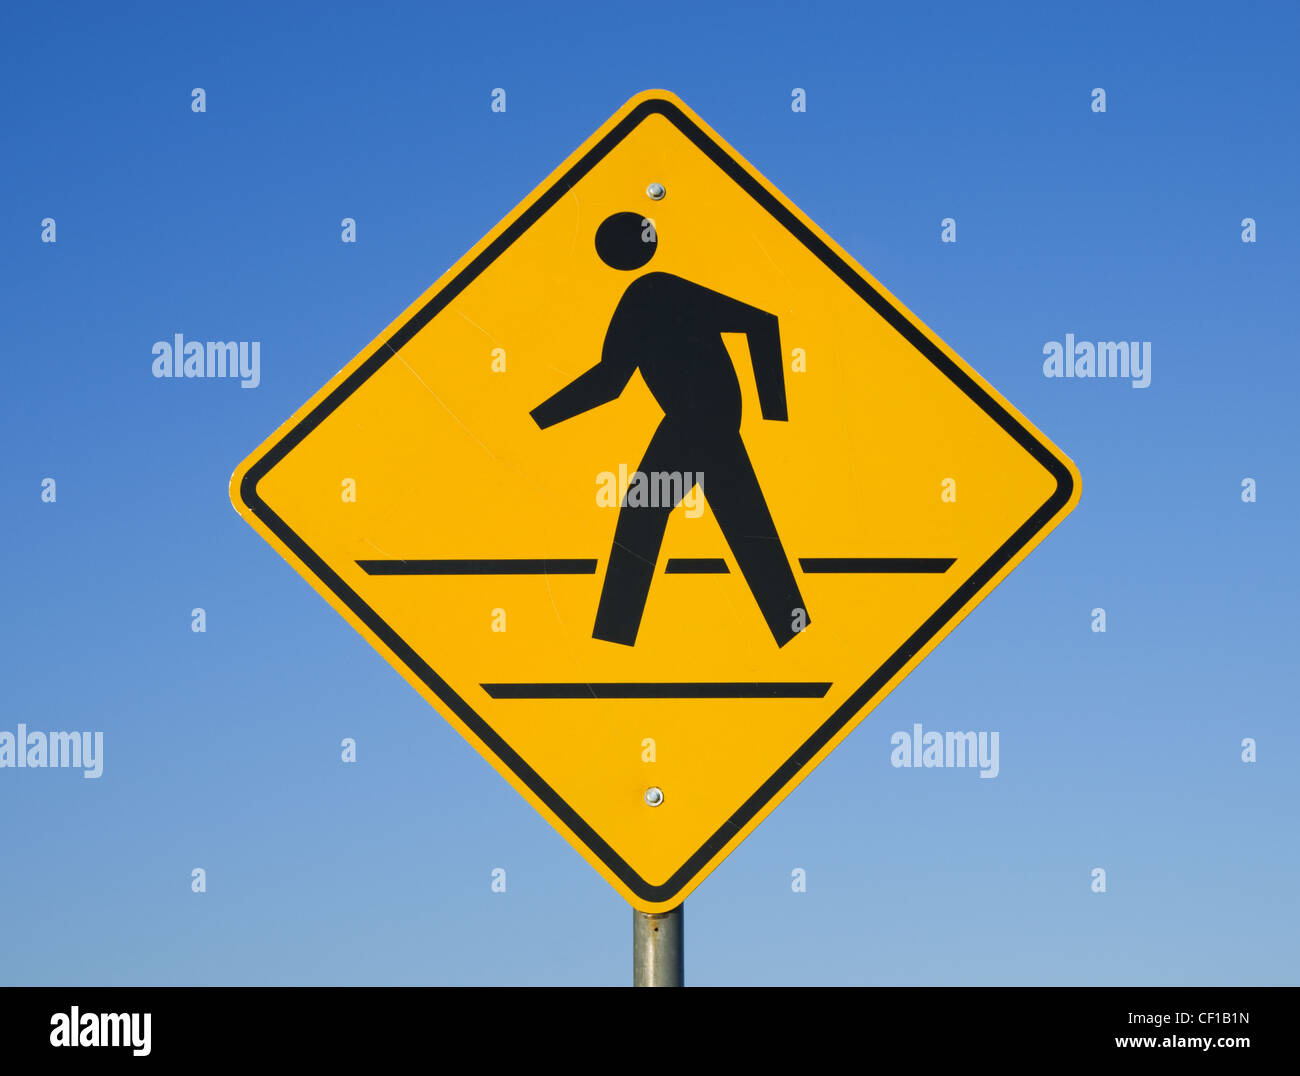 crosswalk sign with a man walking on yellow with a blue sky background - Stock Image